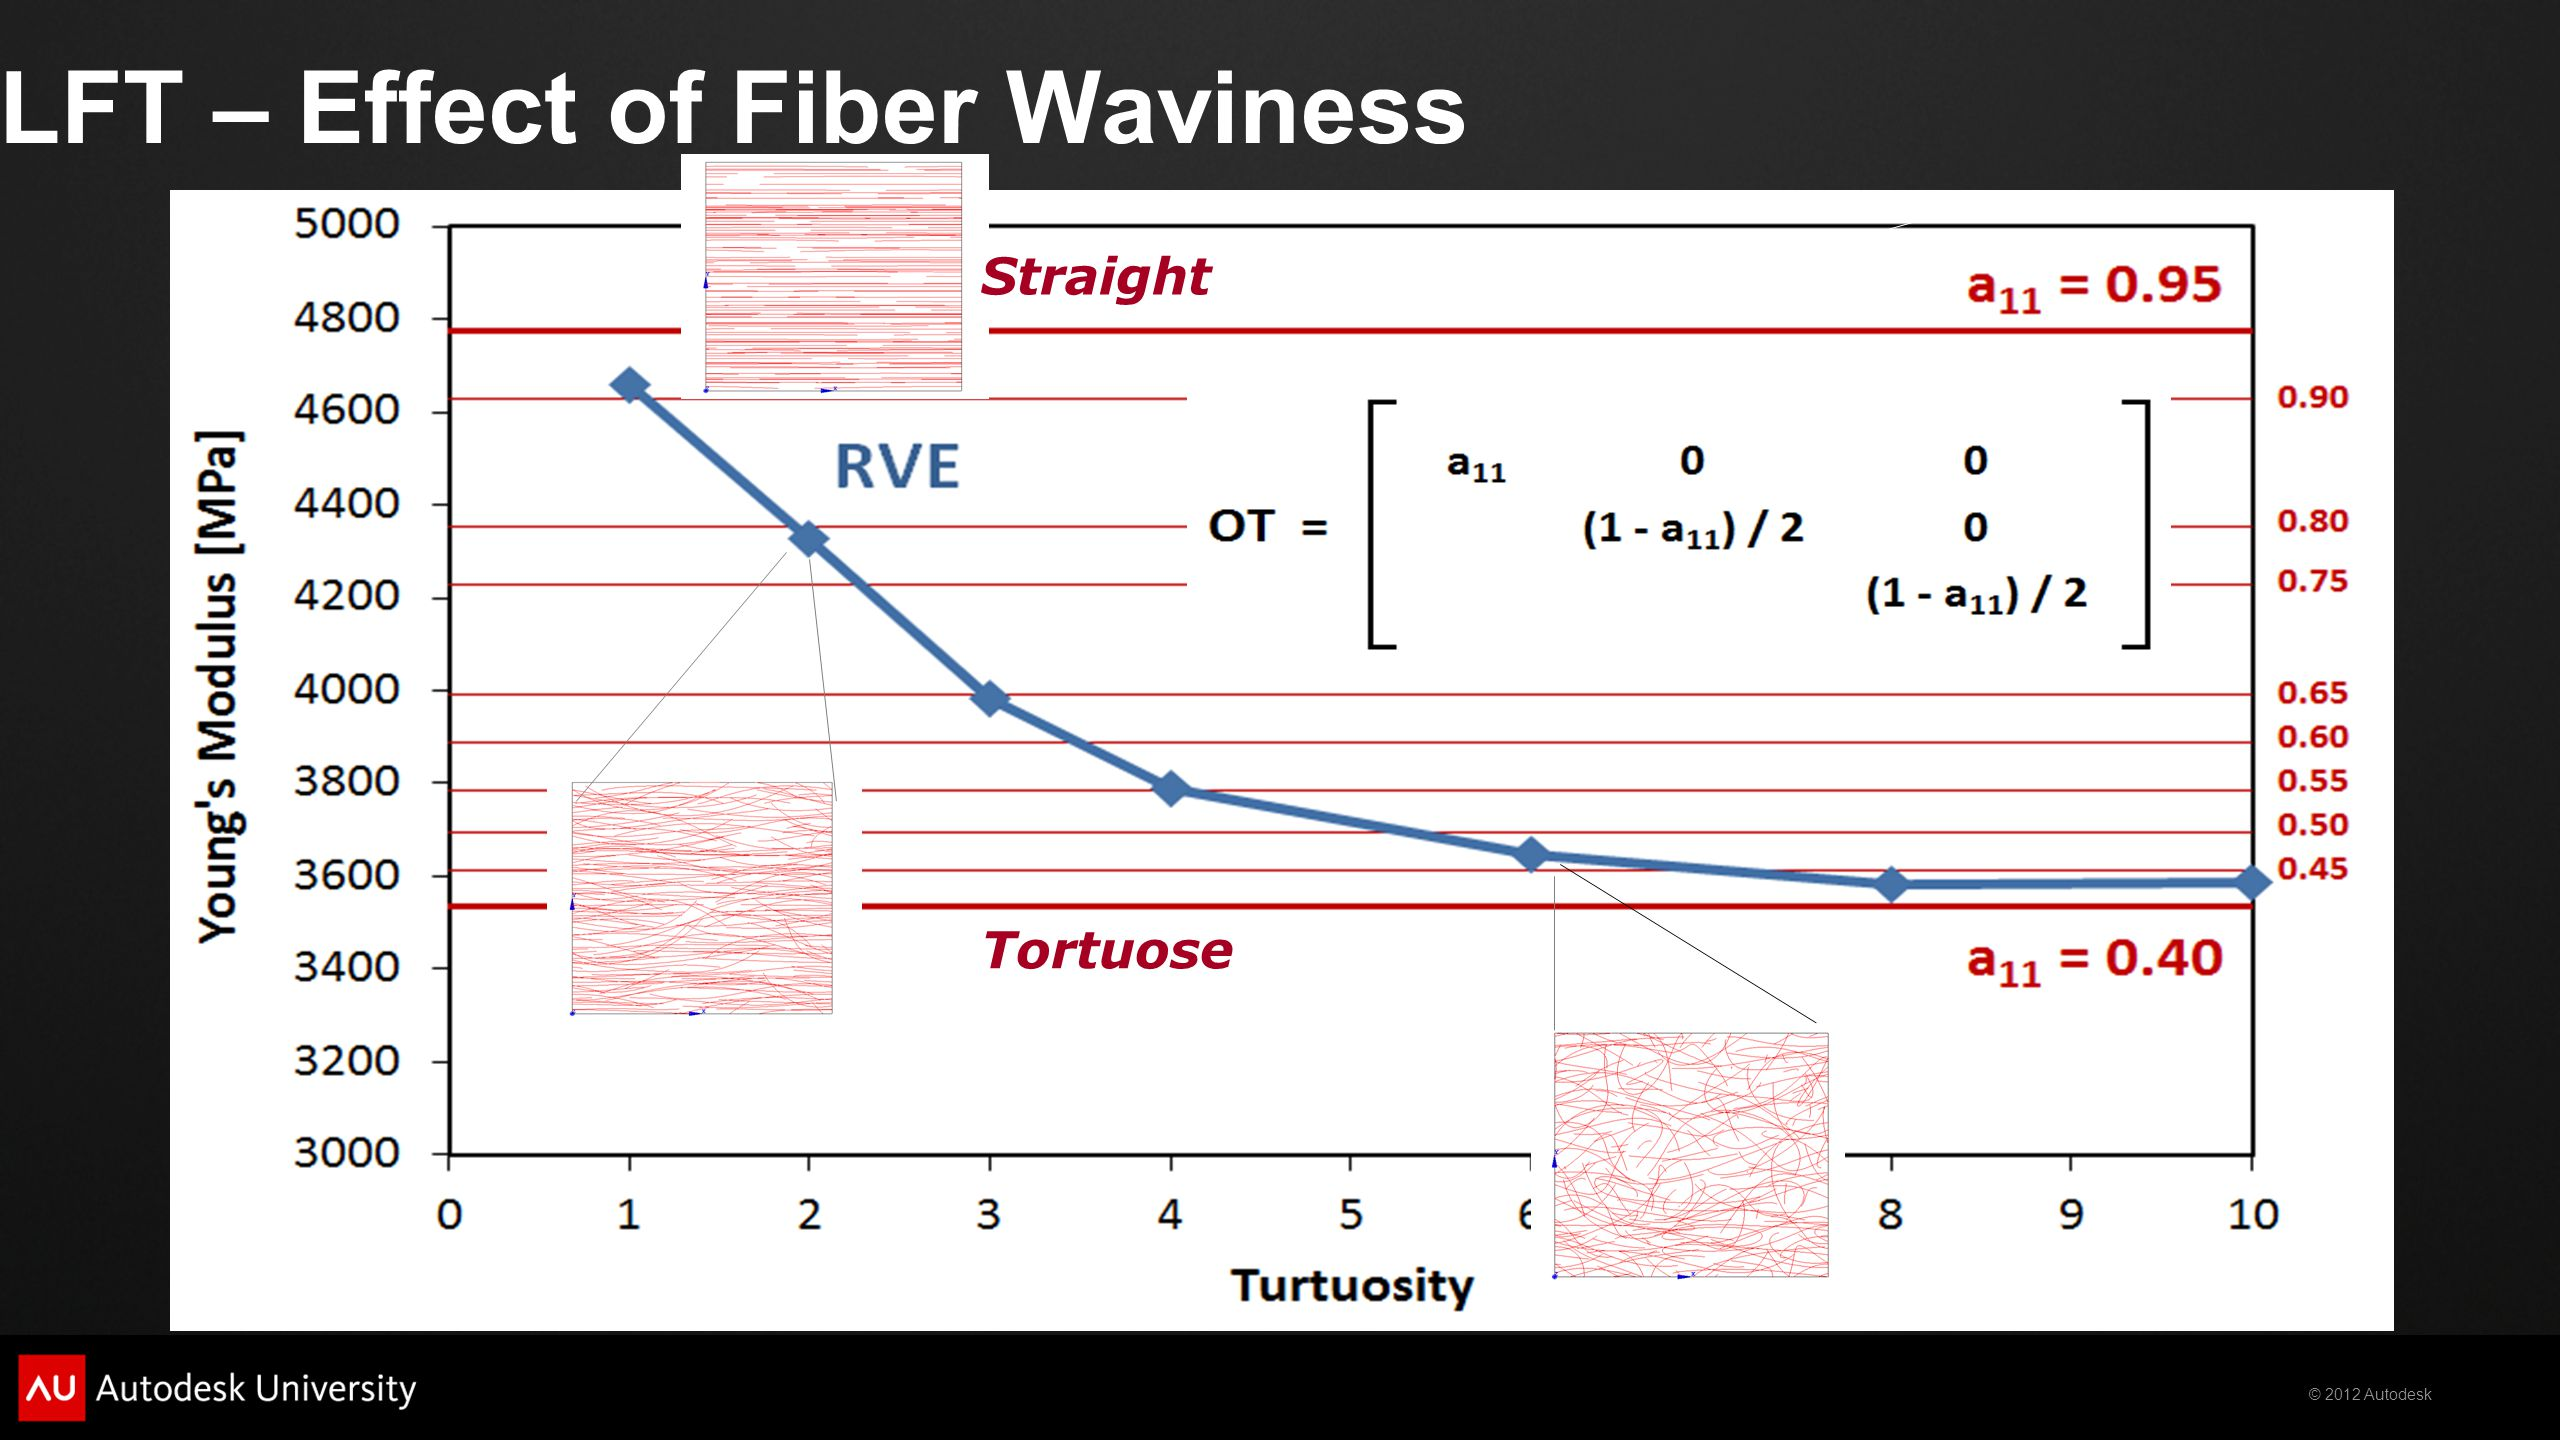 LFT – Effect of Fiber Waviness